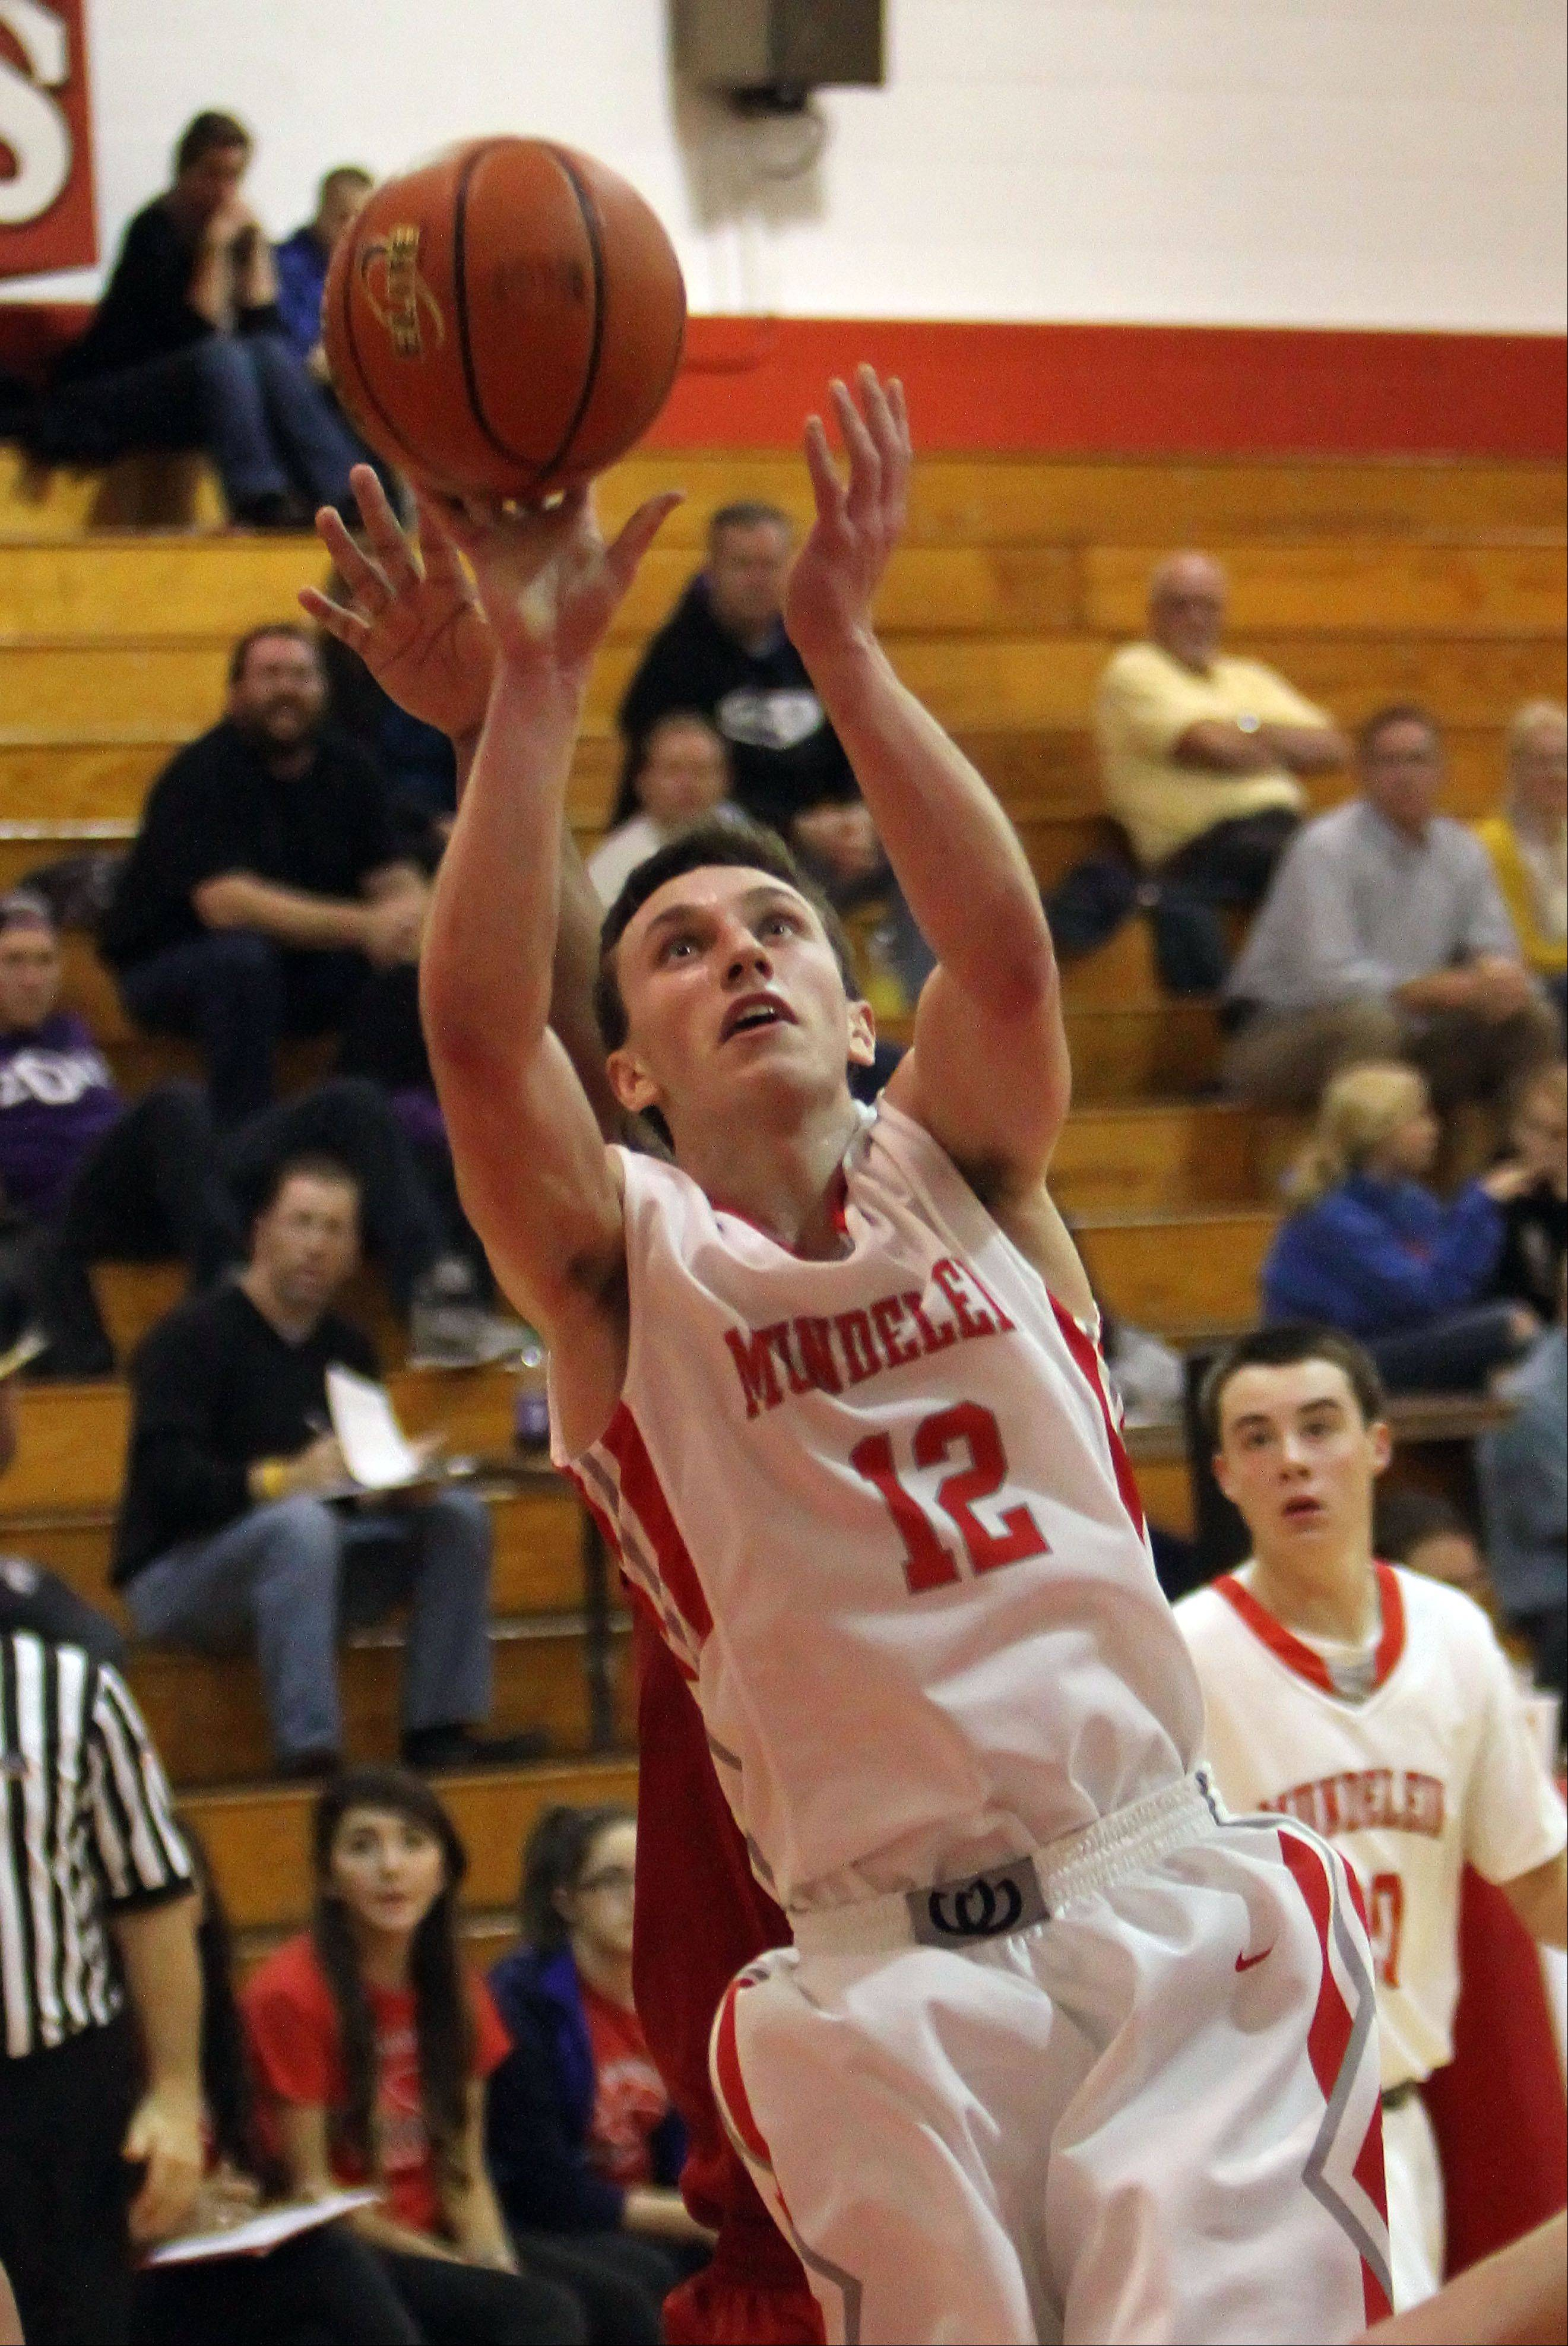 Mundelein's Quinn Pokora drives to the hoop against Lakes last season at Mundelein.